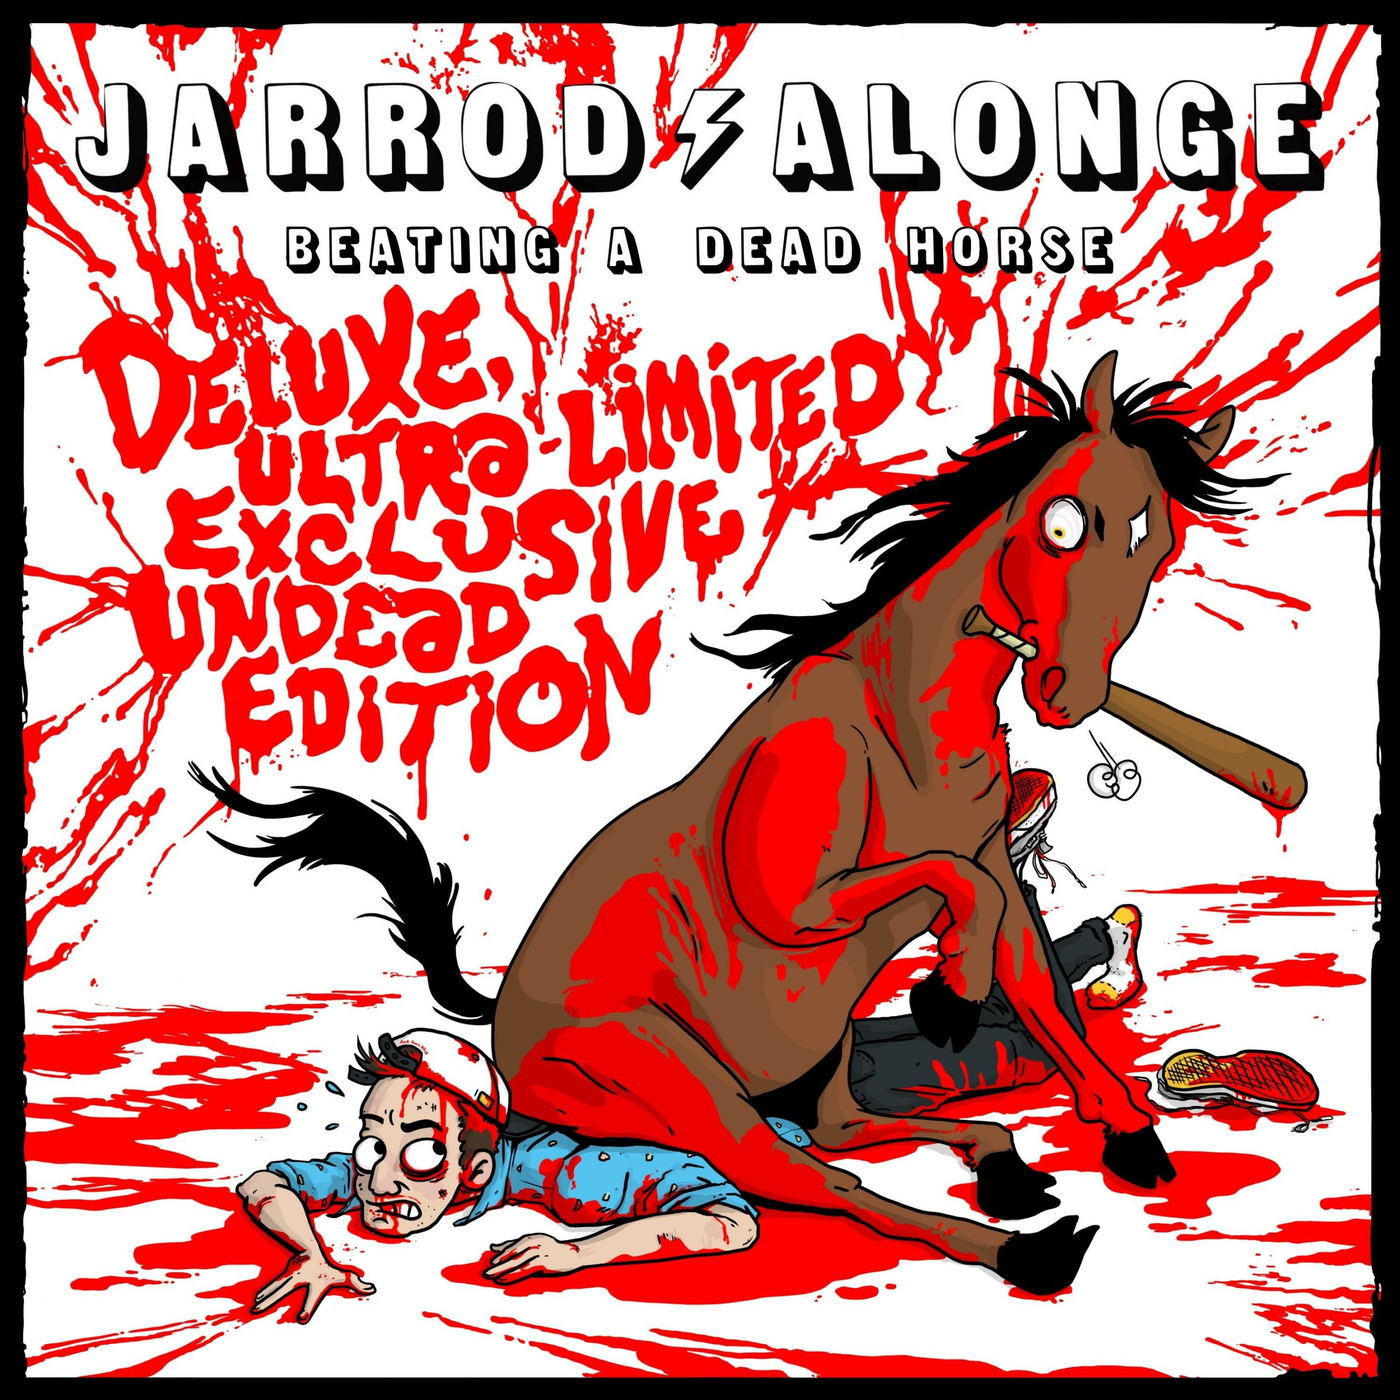 Jarrod Alonge - Beating a Dead Horse: Deluxe Ultra-Limited Exclusive Undead Edition (2015)